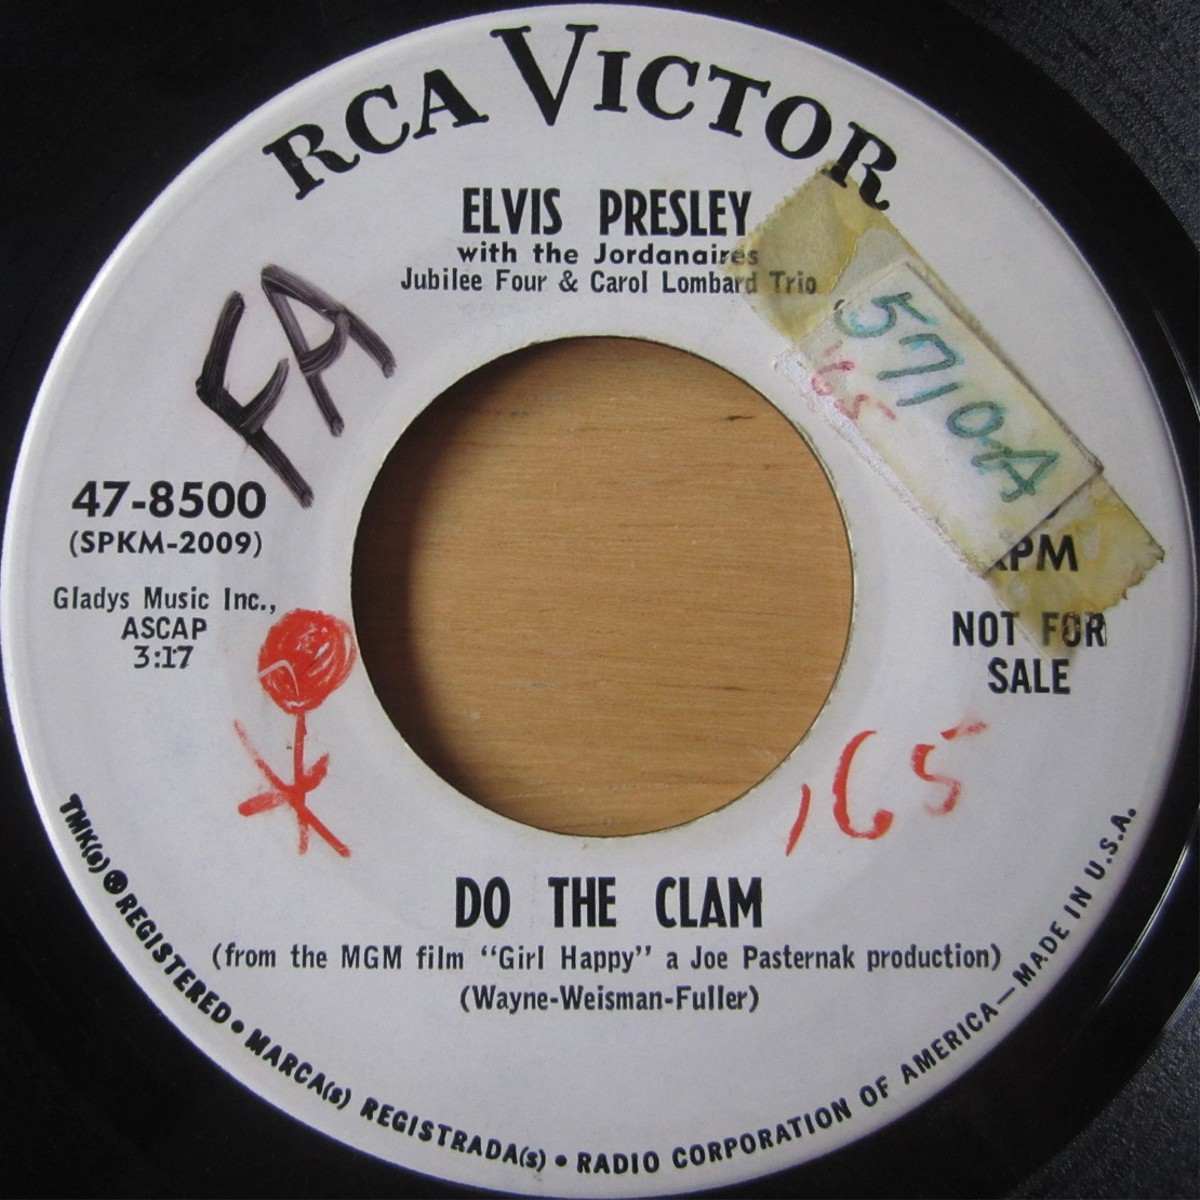 Do The Clam / You'll Be Gone 47-8500cjyu9n